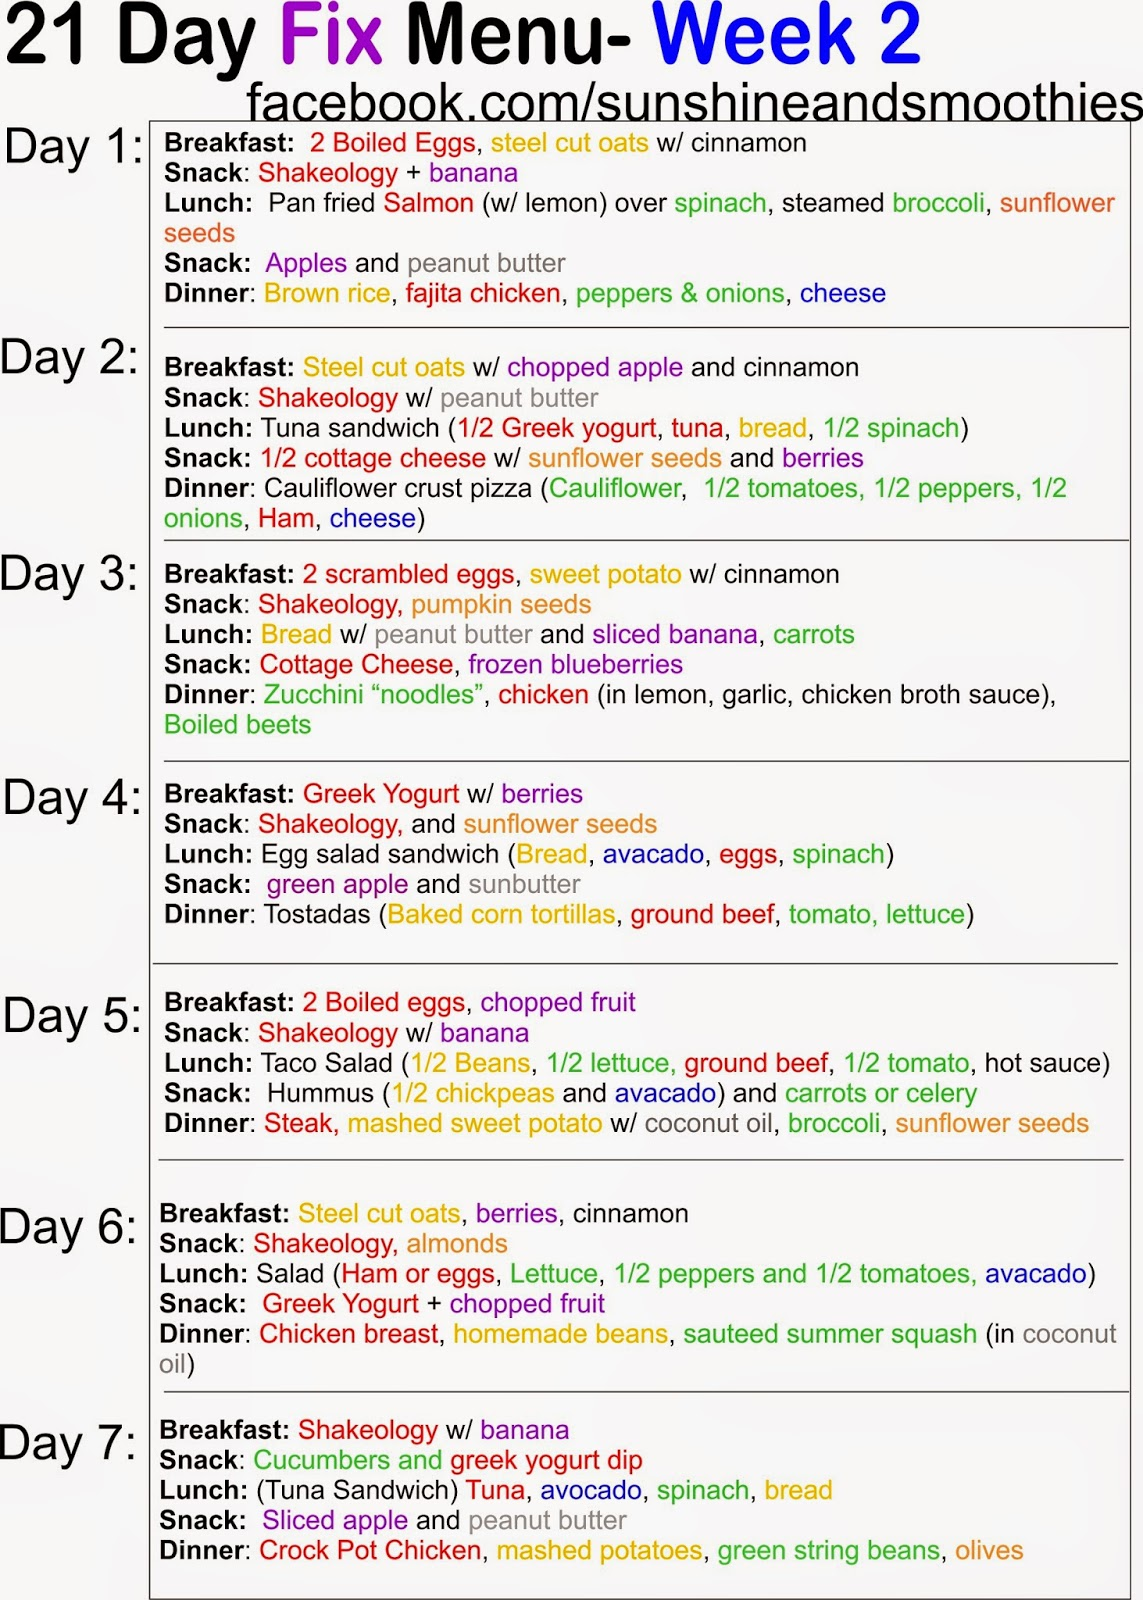 Phase 1, Week 1 Atkins.com Meal Planner #lowcarb | Low Carb Layla ...